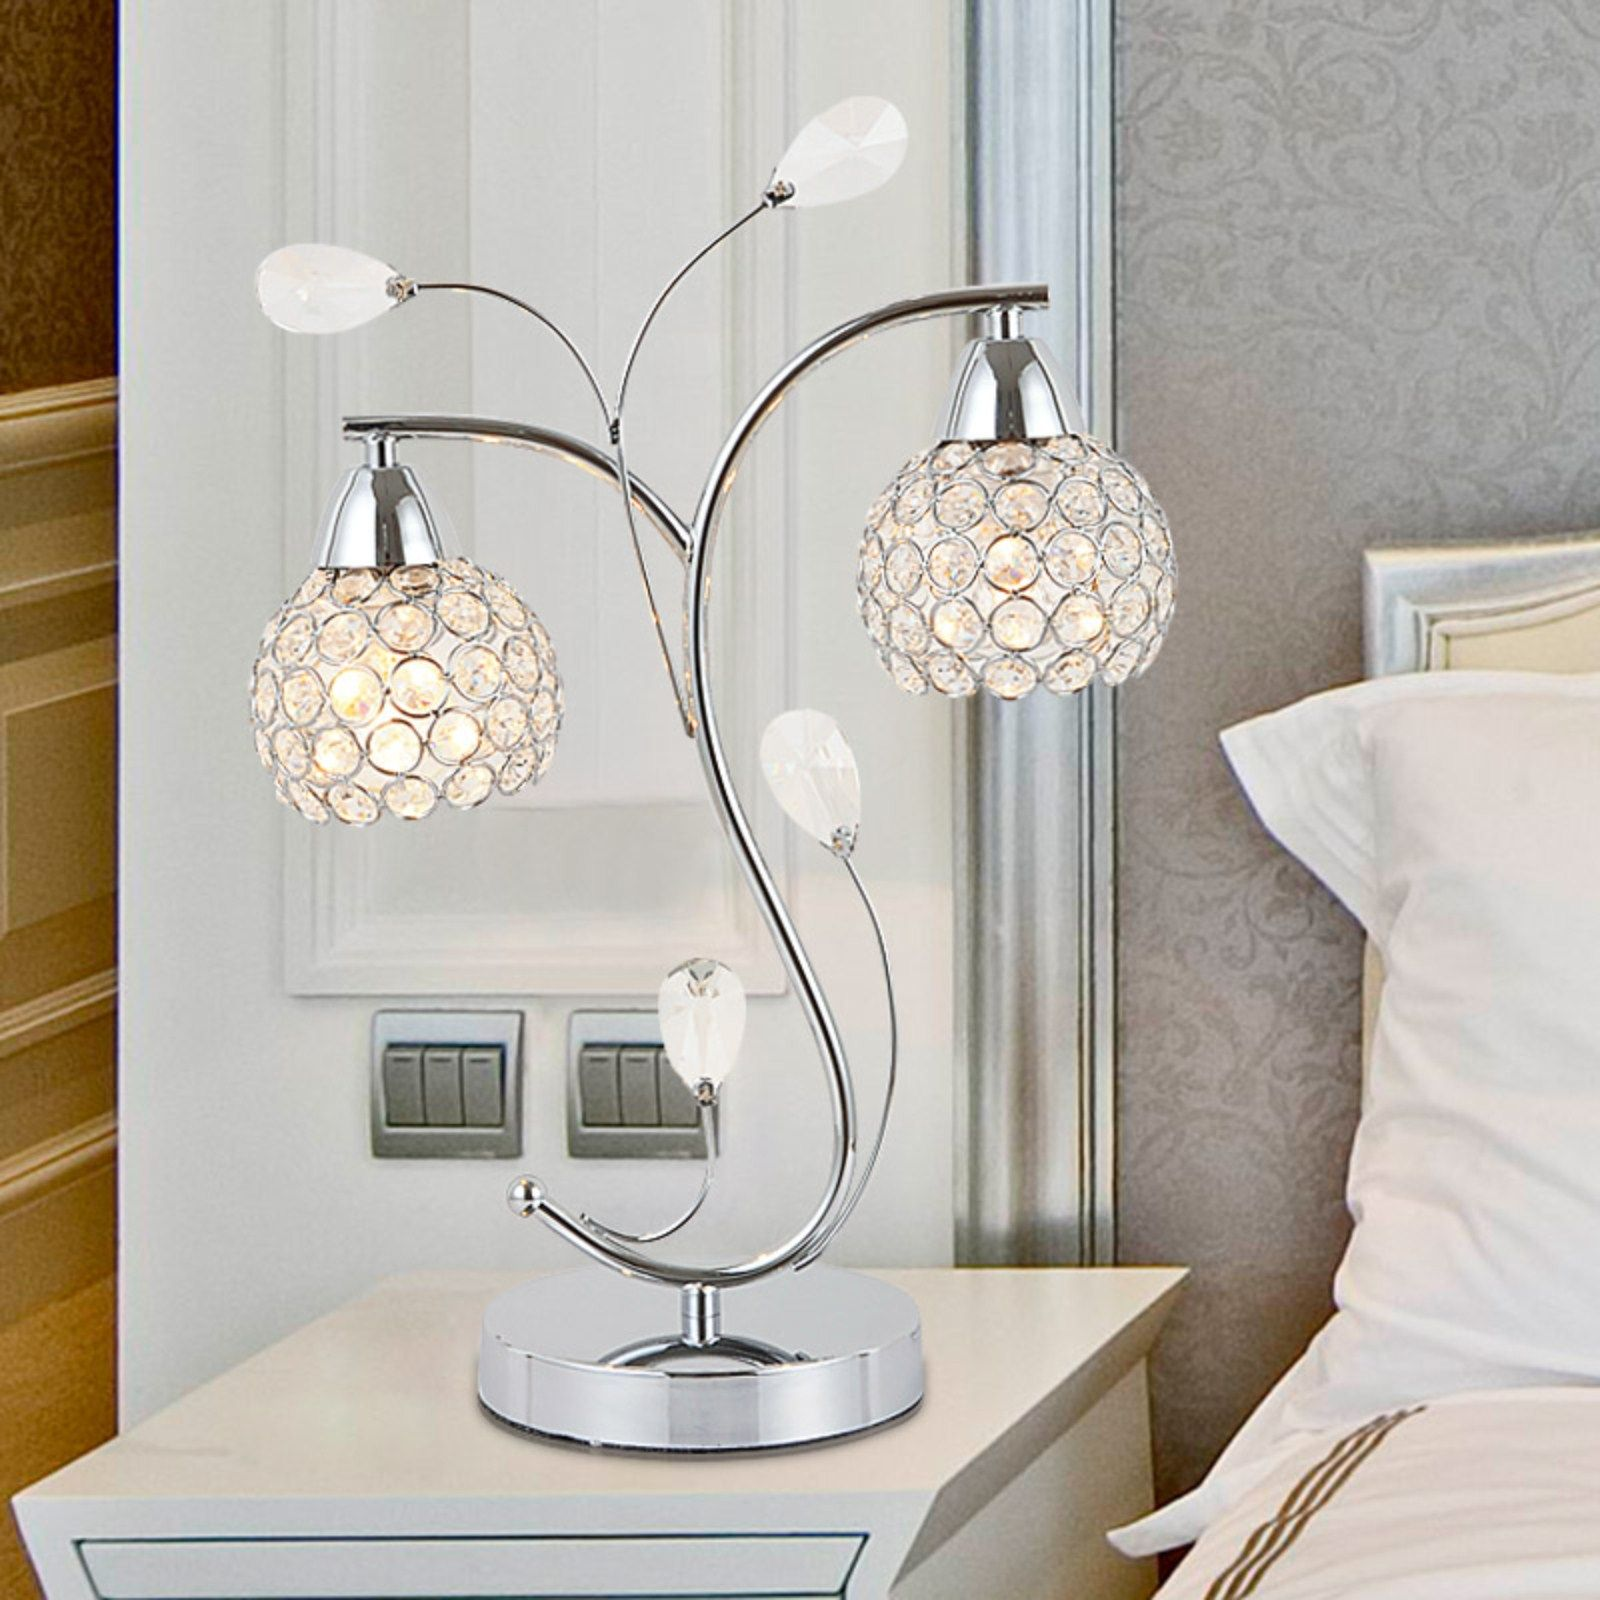 10 Great Spots To Place Side Table Lamps Warisan Lighting Table Lamps For Bedroom Bedroom Lamps Design Modern Lamps Bedroom